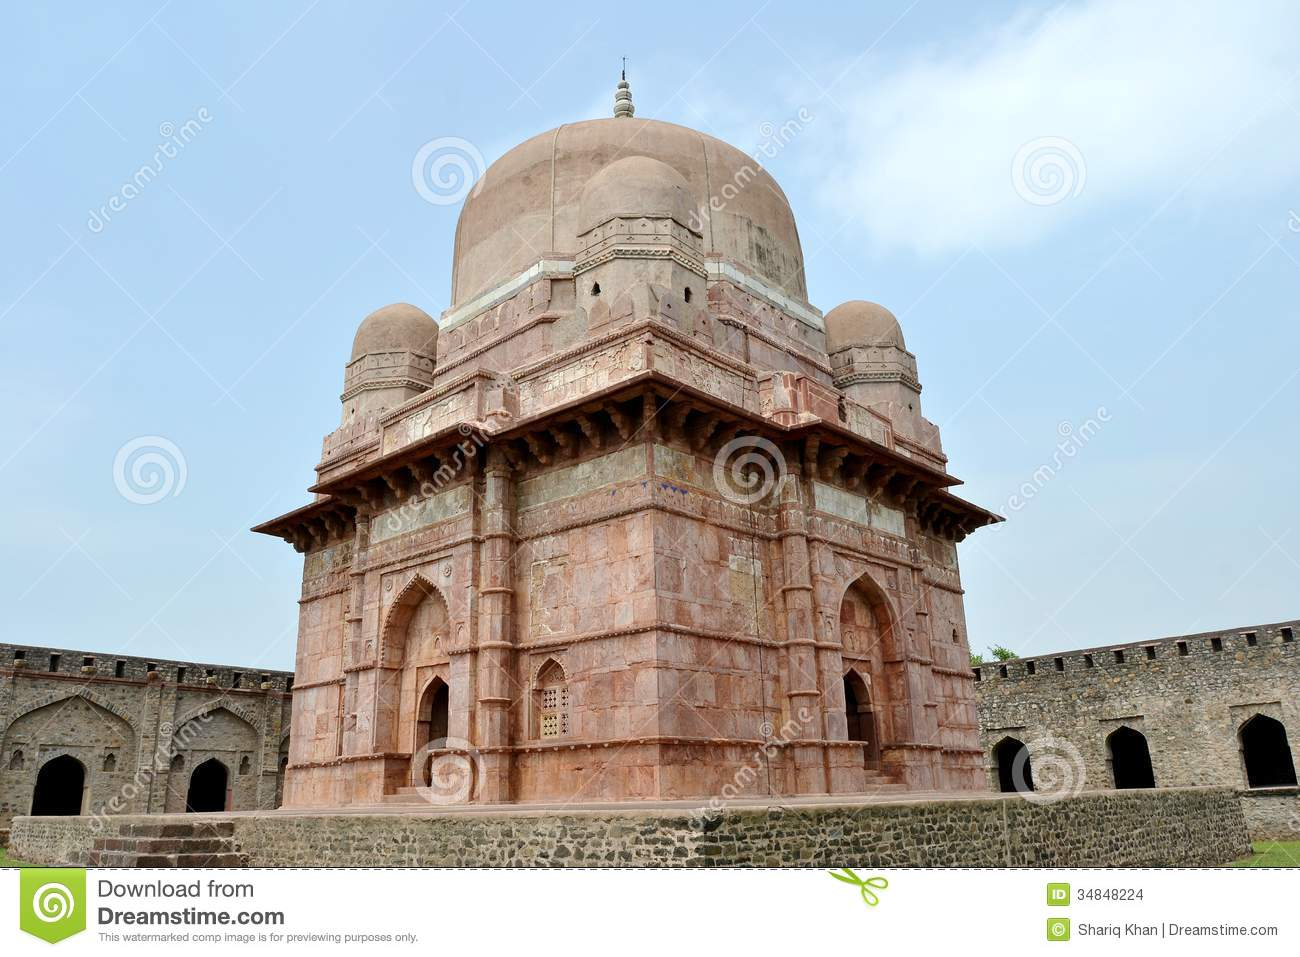 http://thumbs.dreamstime.com/z/dilawar-khan-s-mausoleum-tomb-situated-ancient-city-mandav-mandu-near-dhar-district-madhya-pradesh-city-was-capital-34848224.jpg